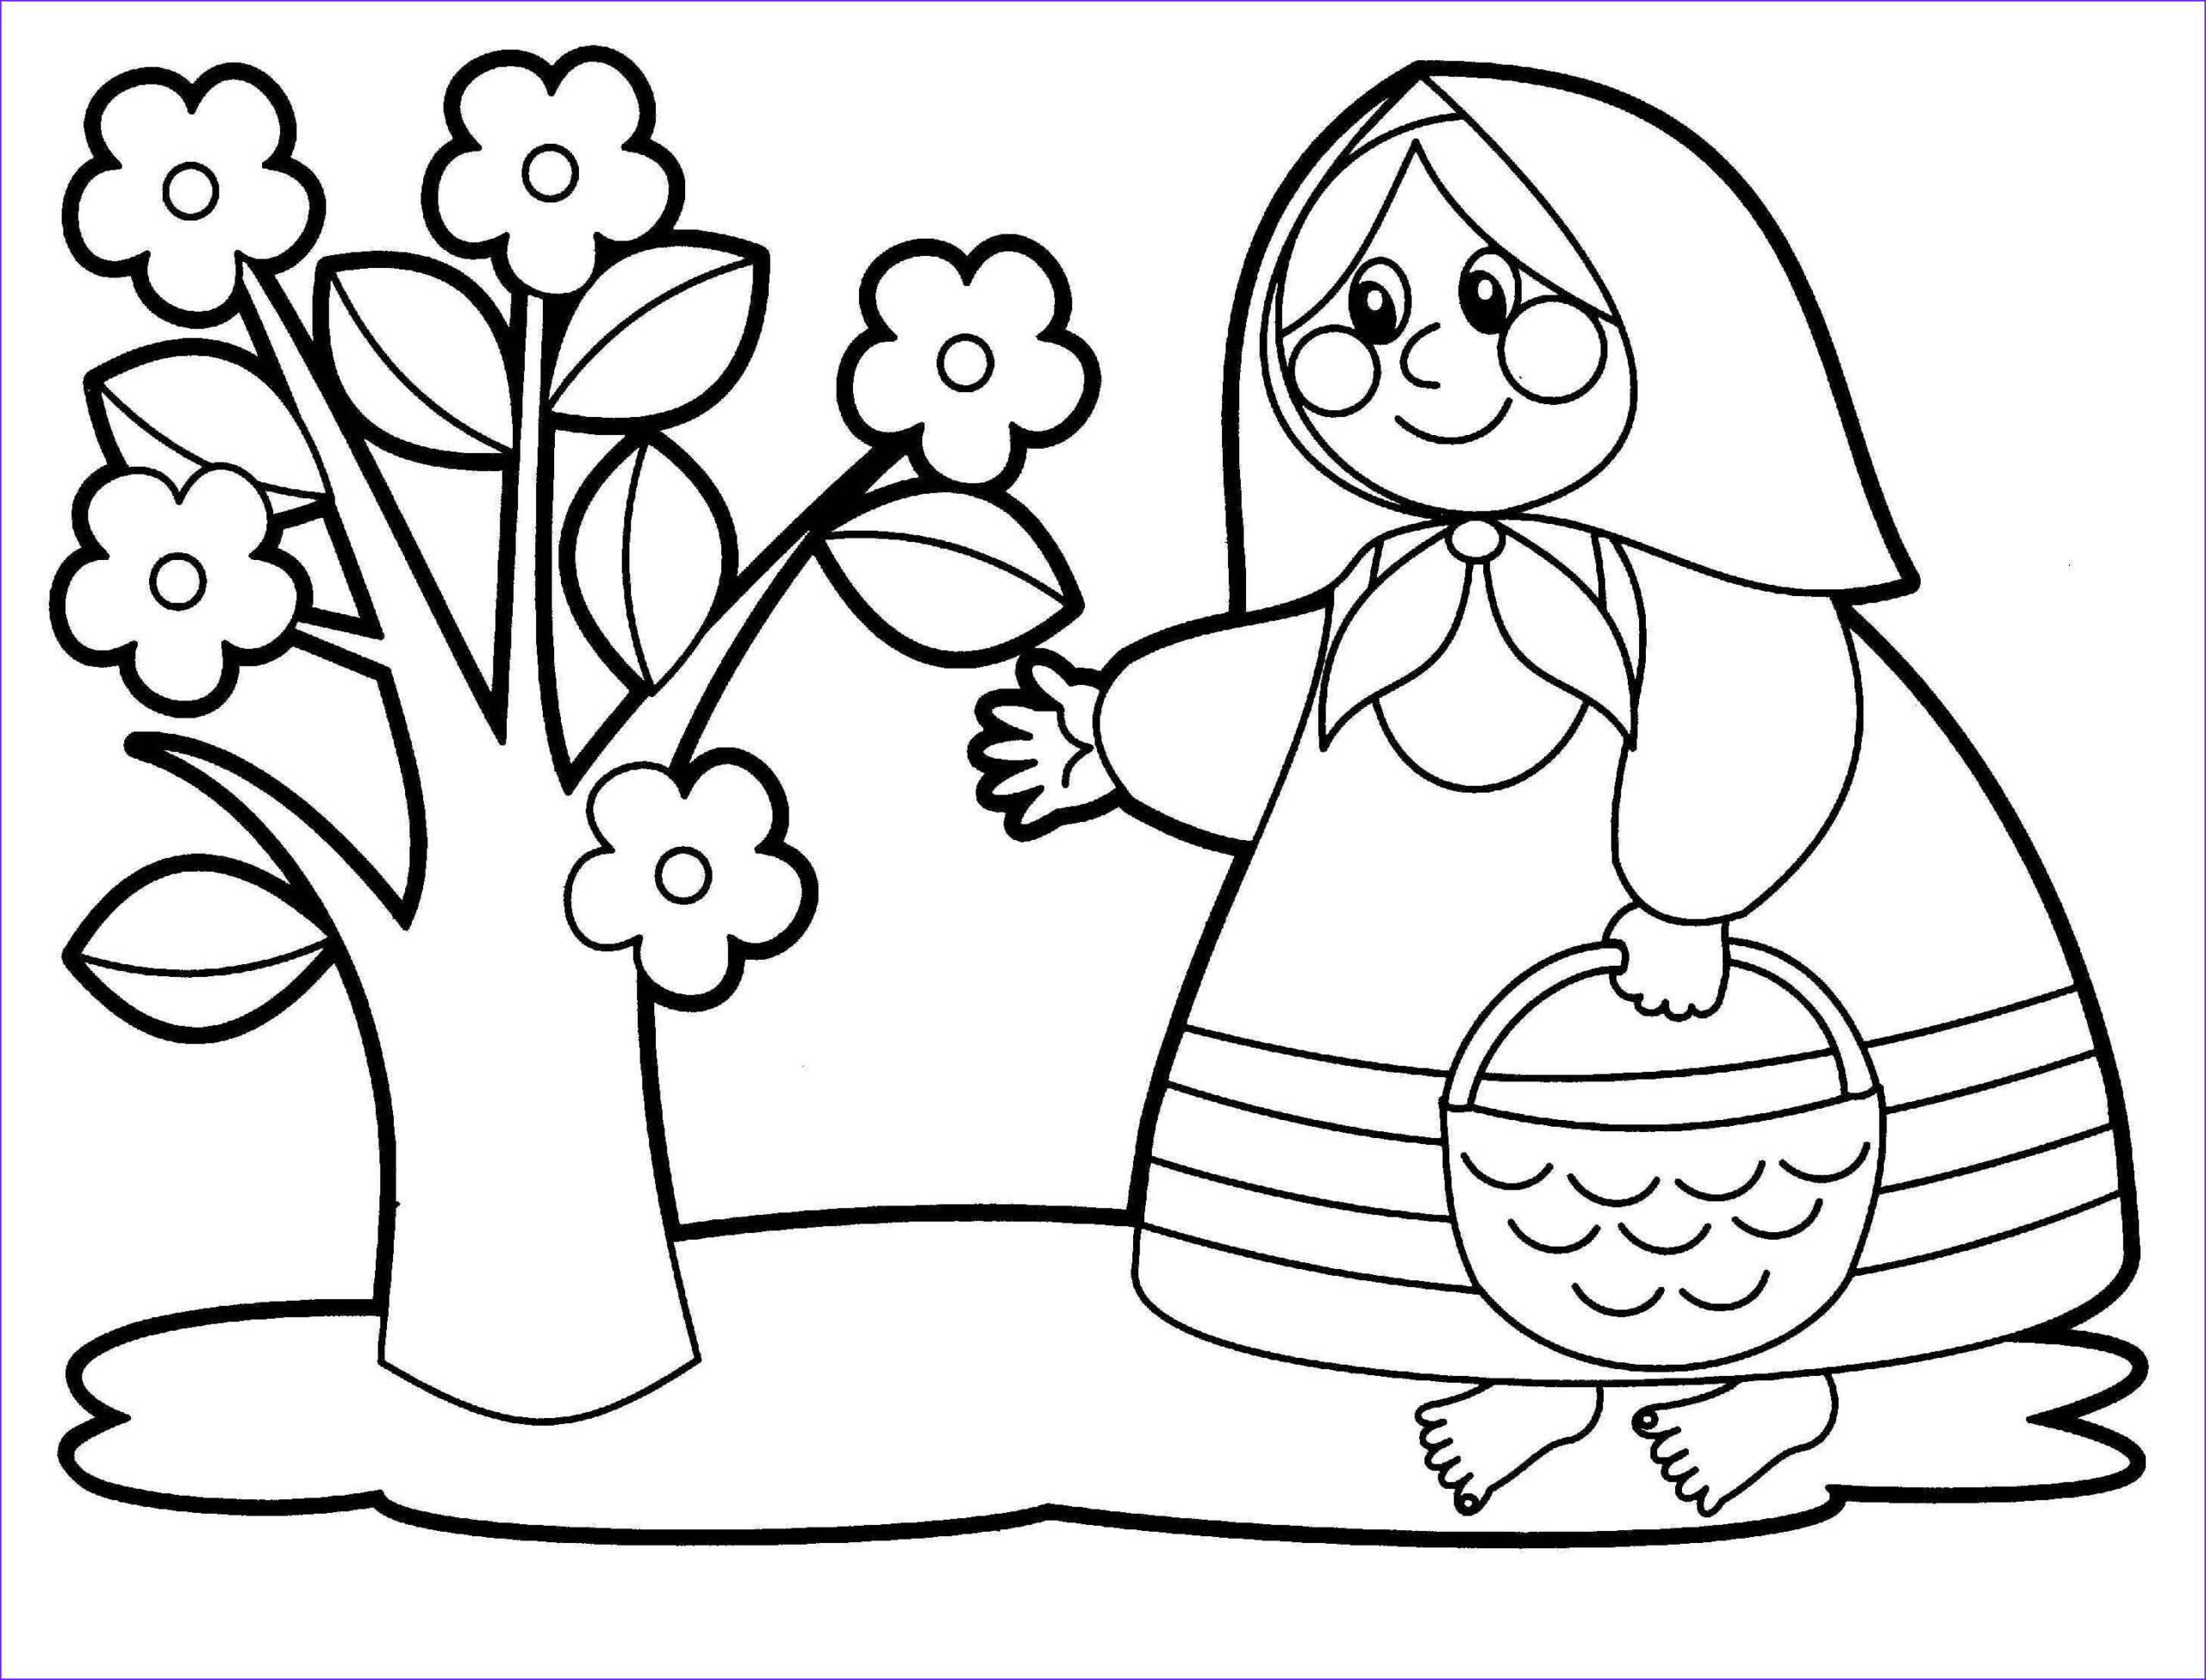 Best Coloring Book for toddlers Beautiful Photos Coloring Pages for Children Of 4 5 Years to and